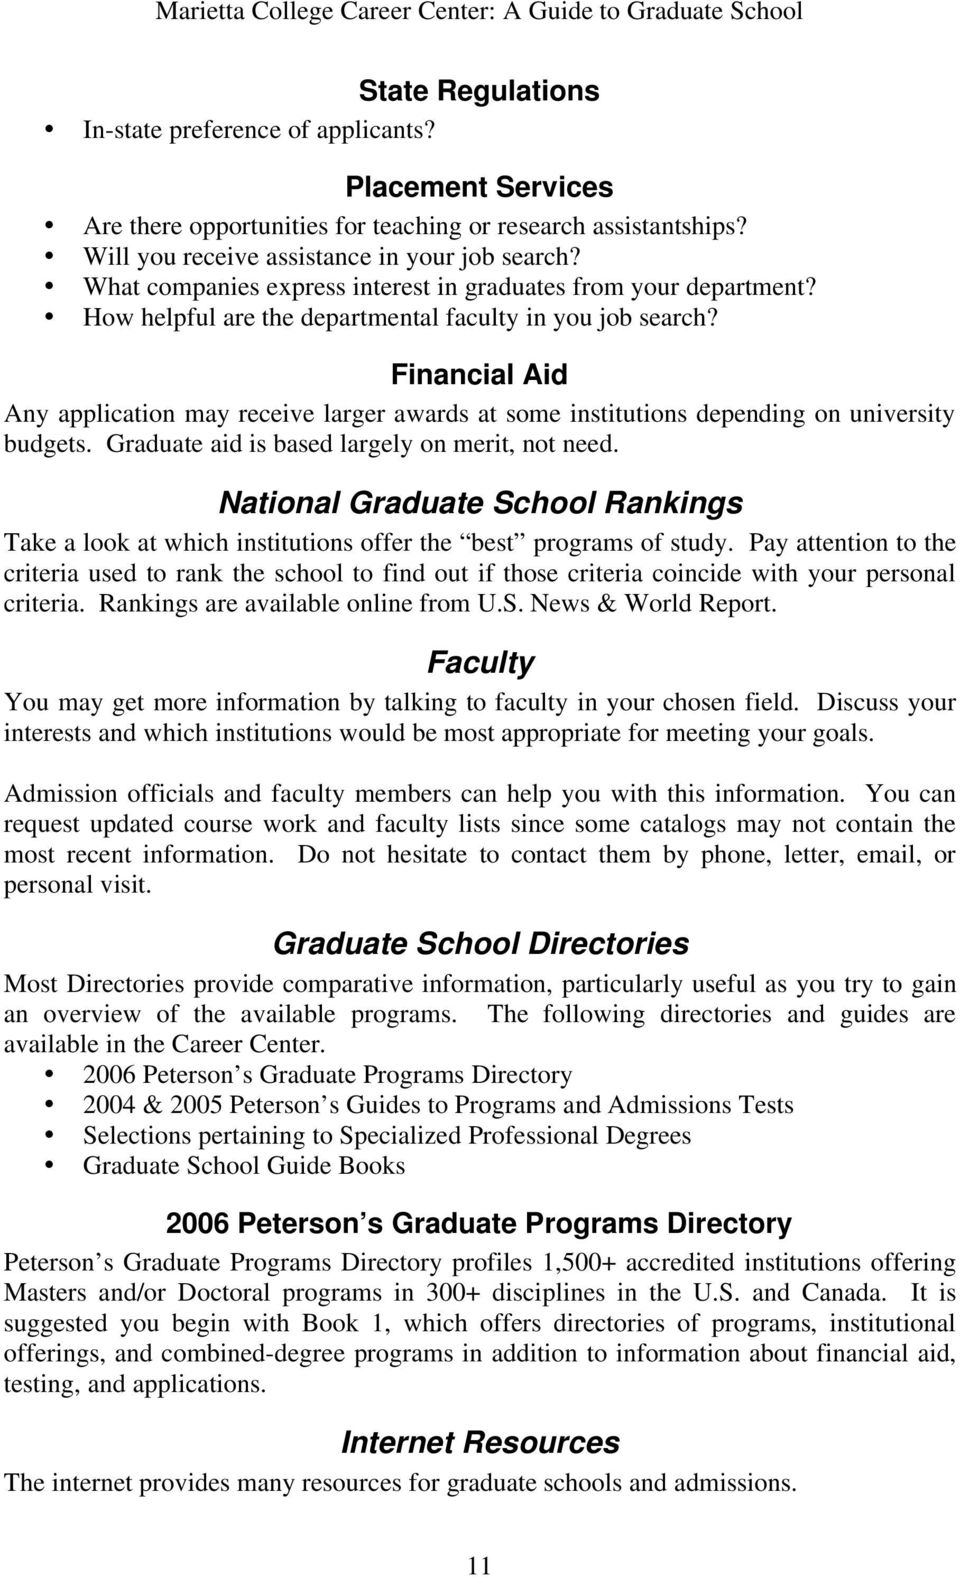 Financial Aid Any application may receive larger awards at some institutions depending on university budgets. Graduate aid is based largely on merit, not need.